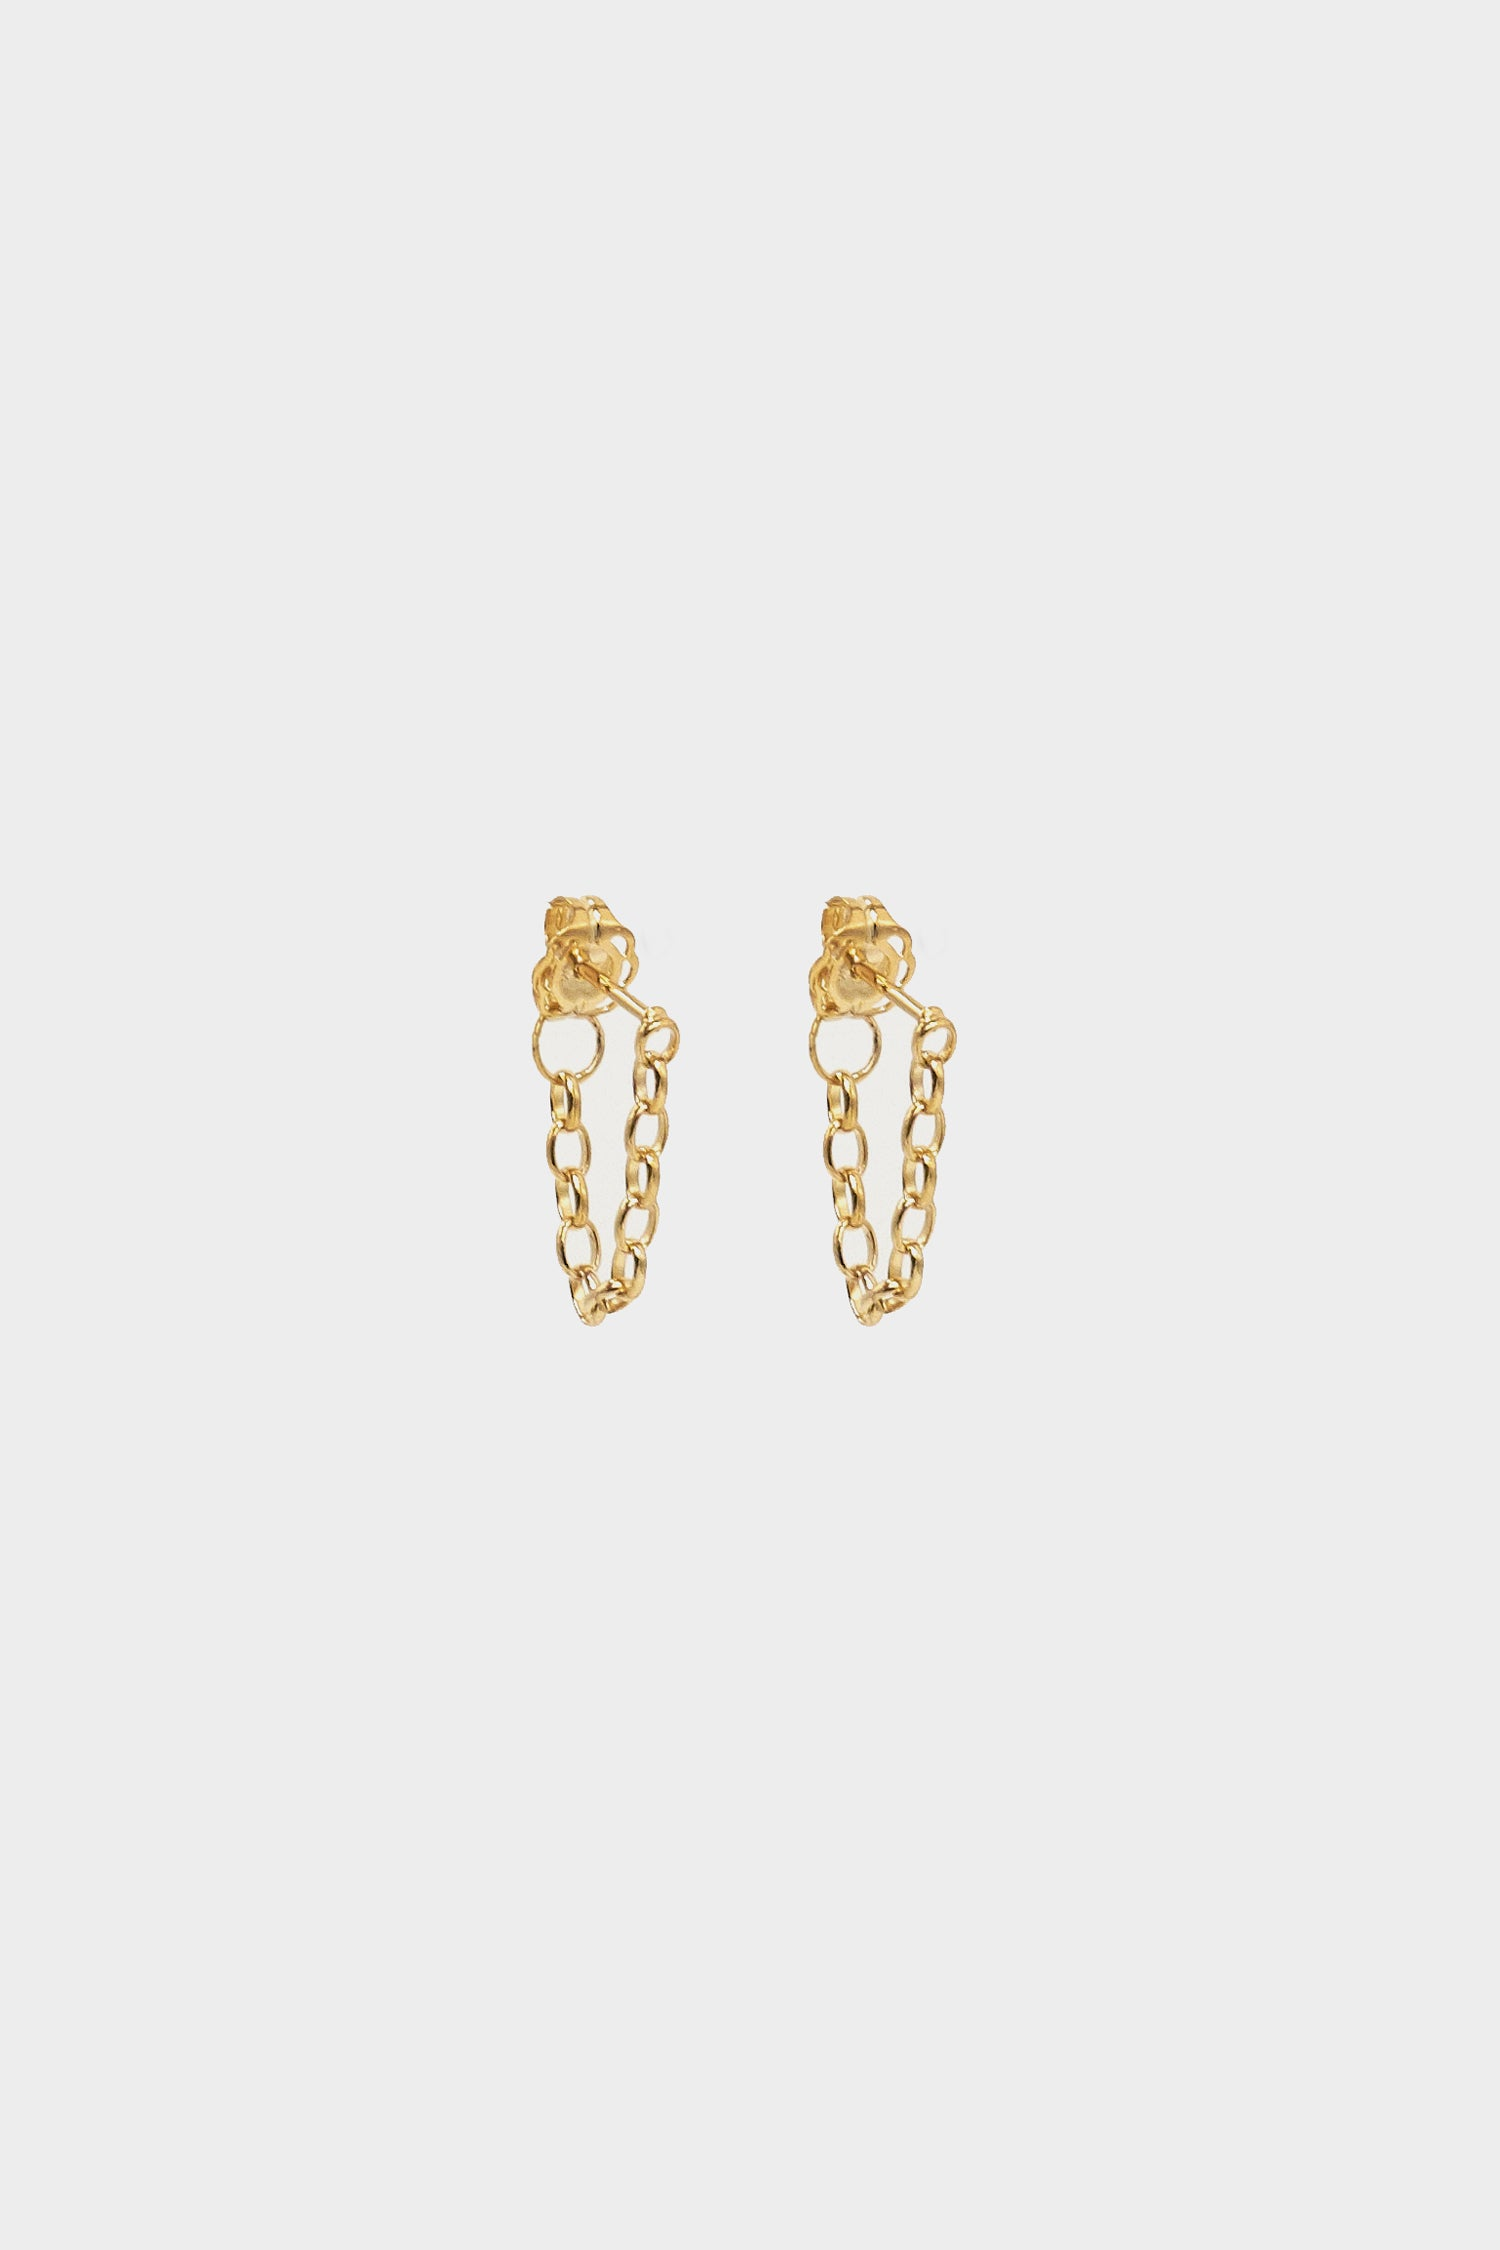 Chain Earrings | 9K Yellow Gold